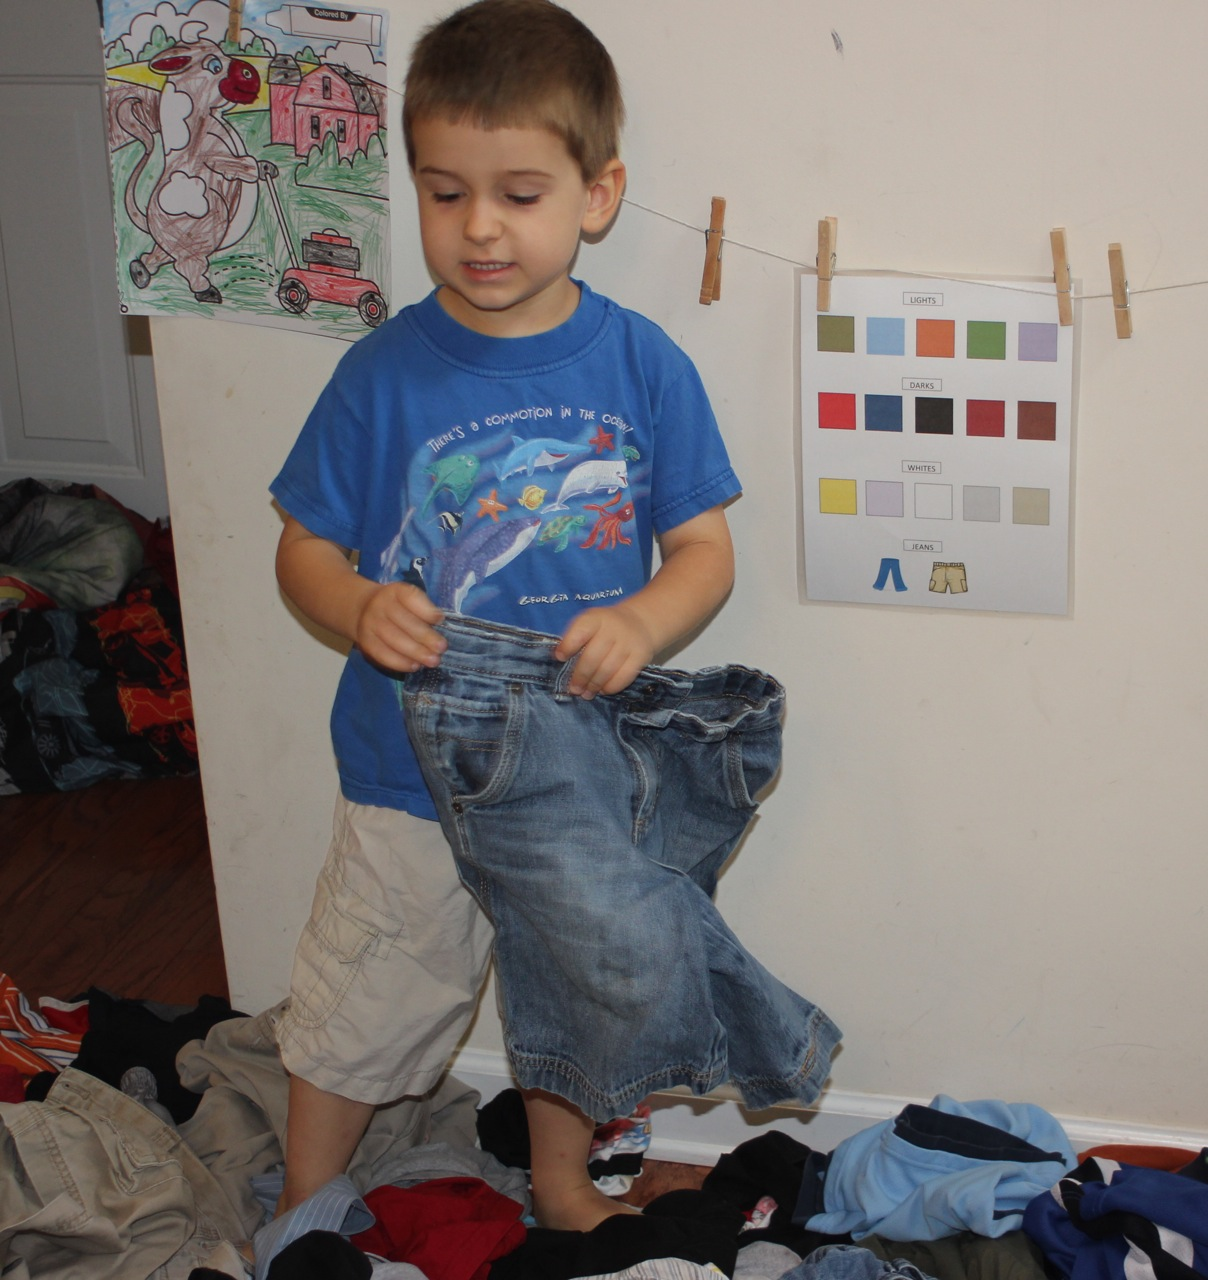 Laundry Sorting Chore — Home School Support Network